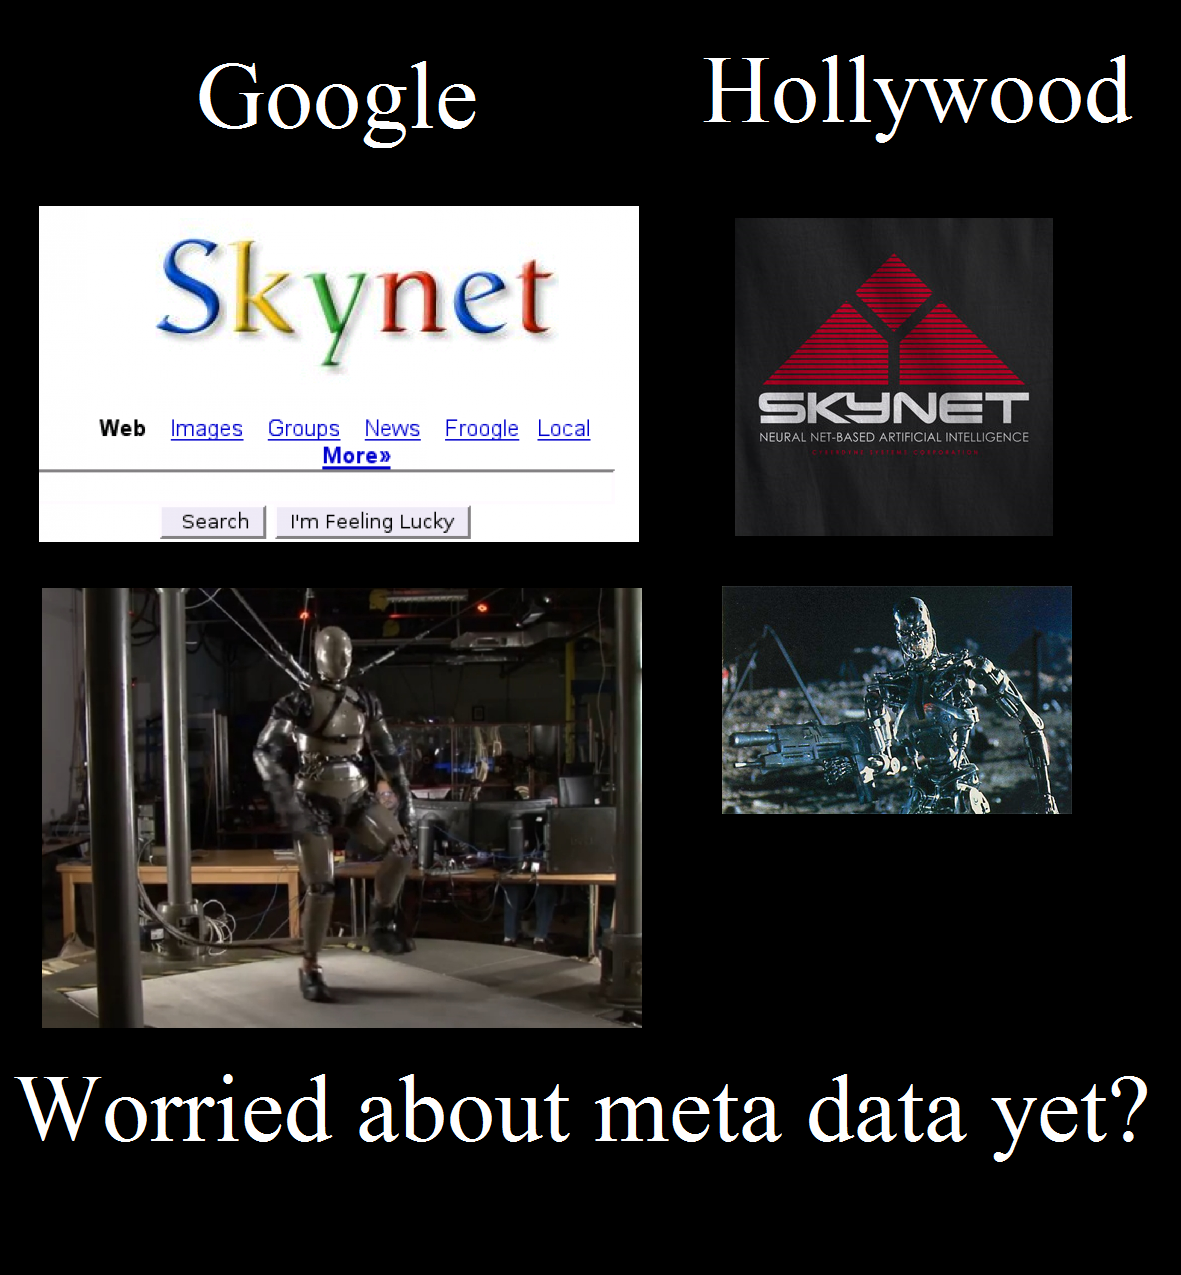 Google has huge amounts of internet data an meta data and has recently purchased from DARPA/Boston Dynamics PETMAN and other robotics technology